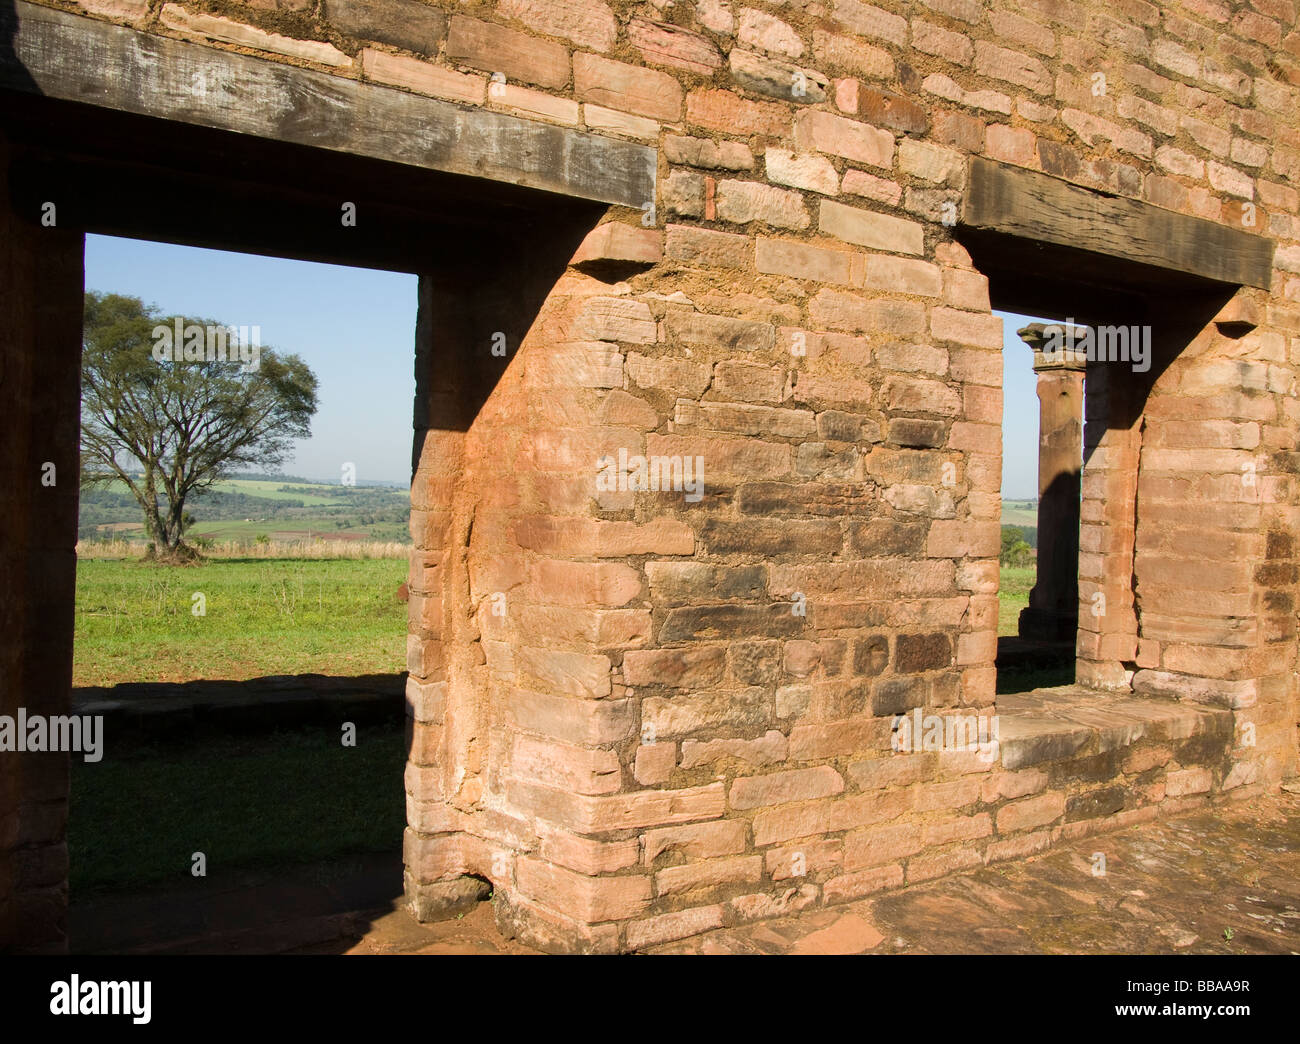 Paraguay.Jesuits Reductions.Reduction of Jésus.Remains of the workshops.UNESCO World Heritage Site. - Stock Image